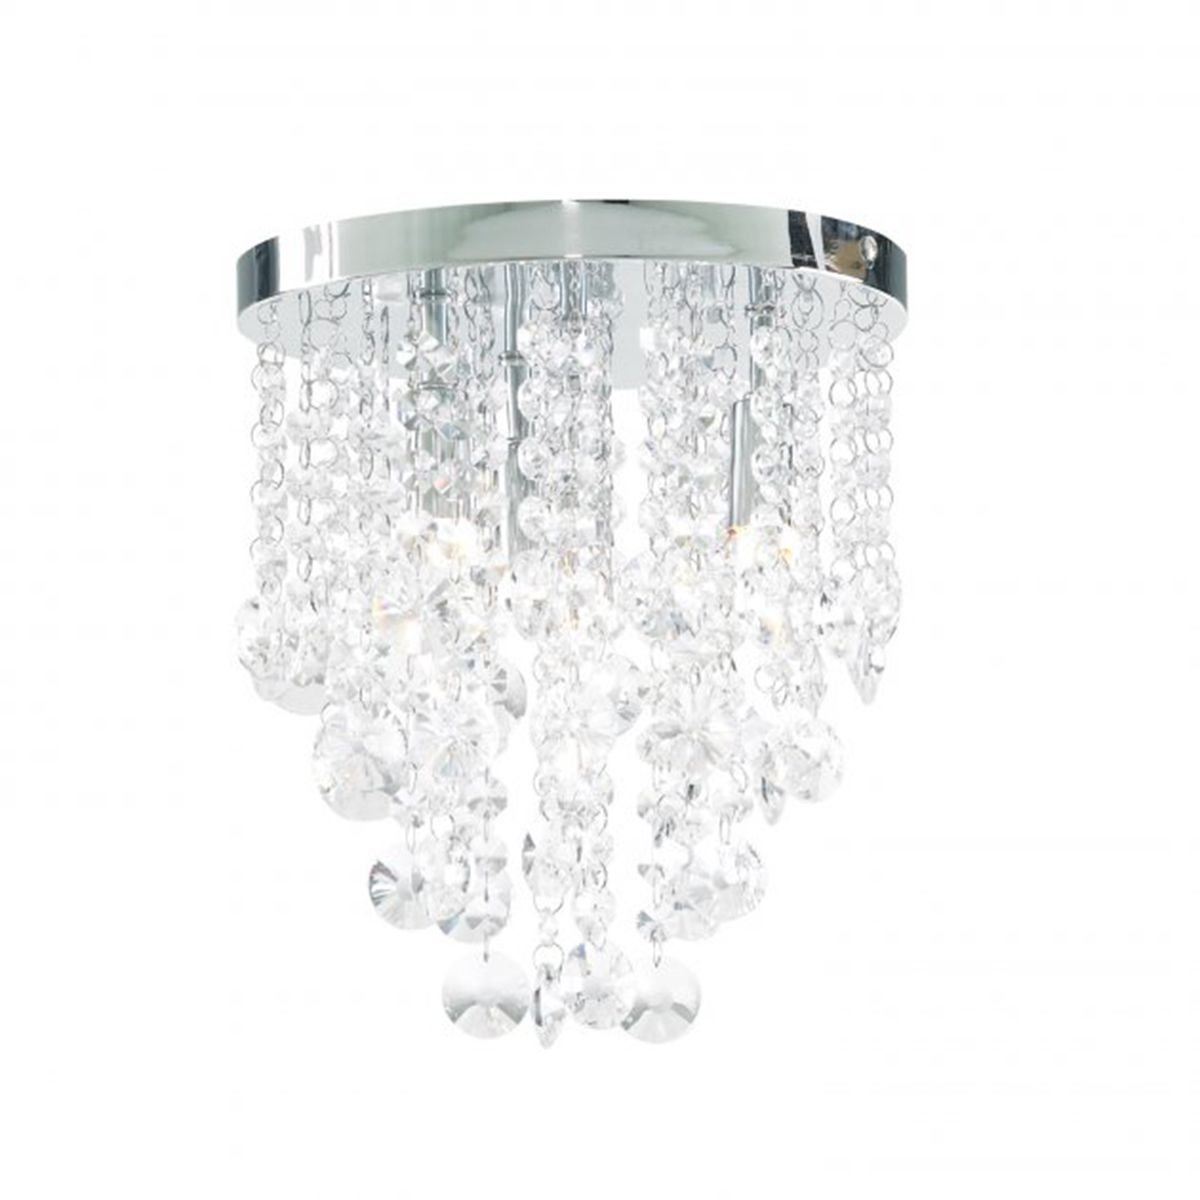 Frontline Chrome Crystal Dropped Bathroom Chandelier 260mm